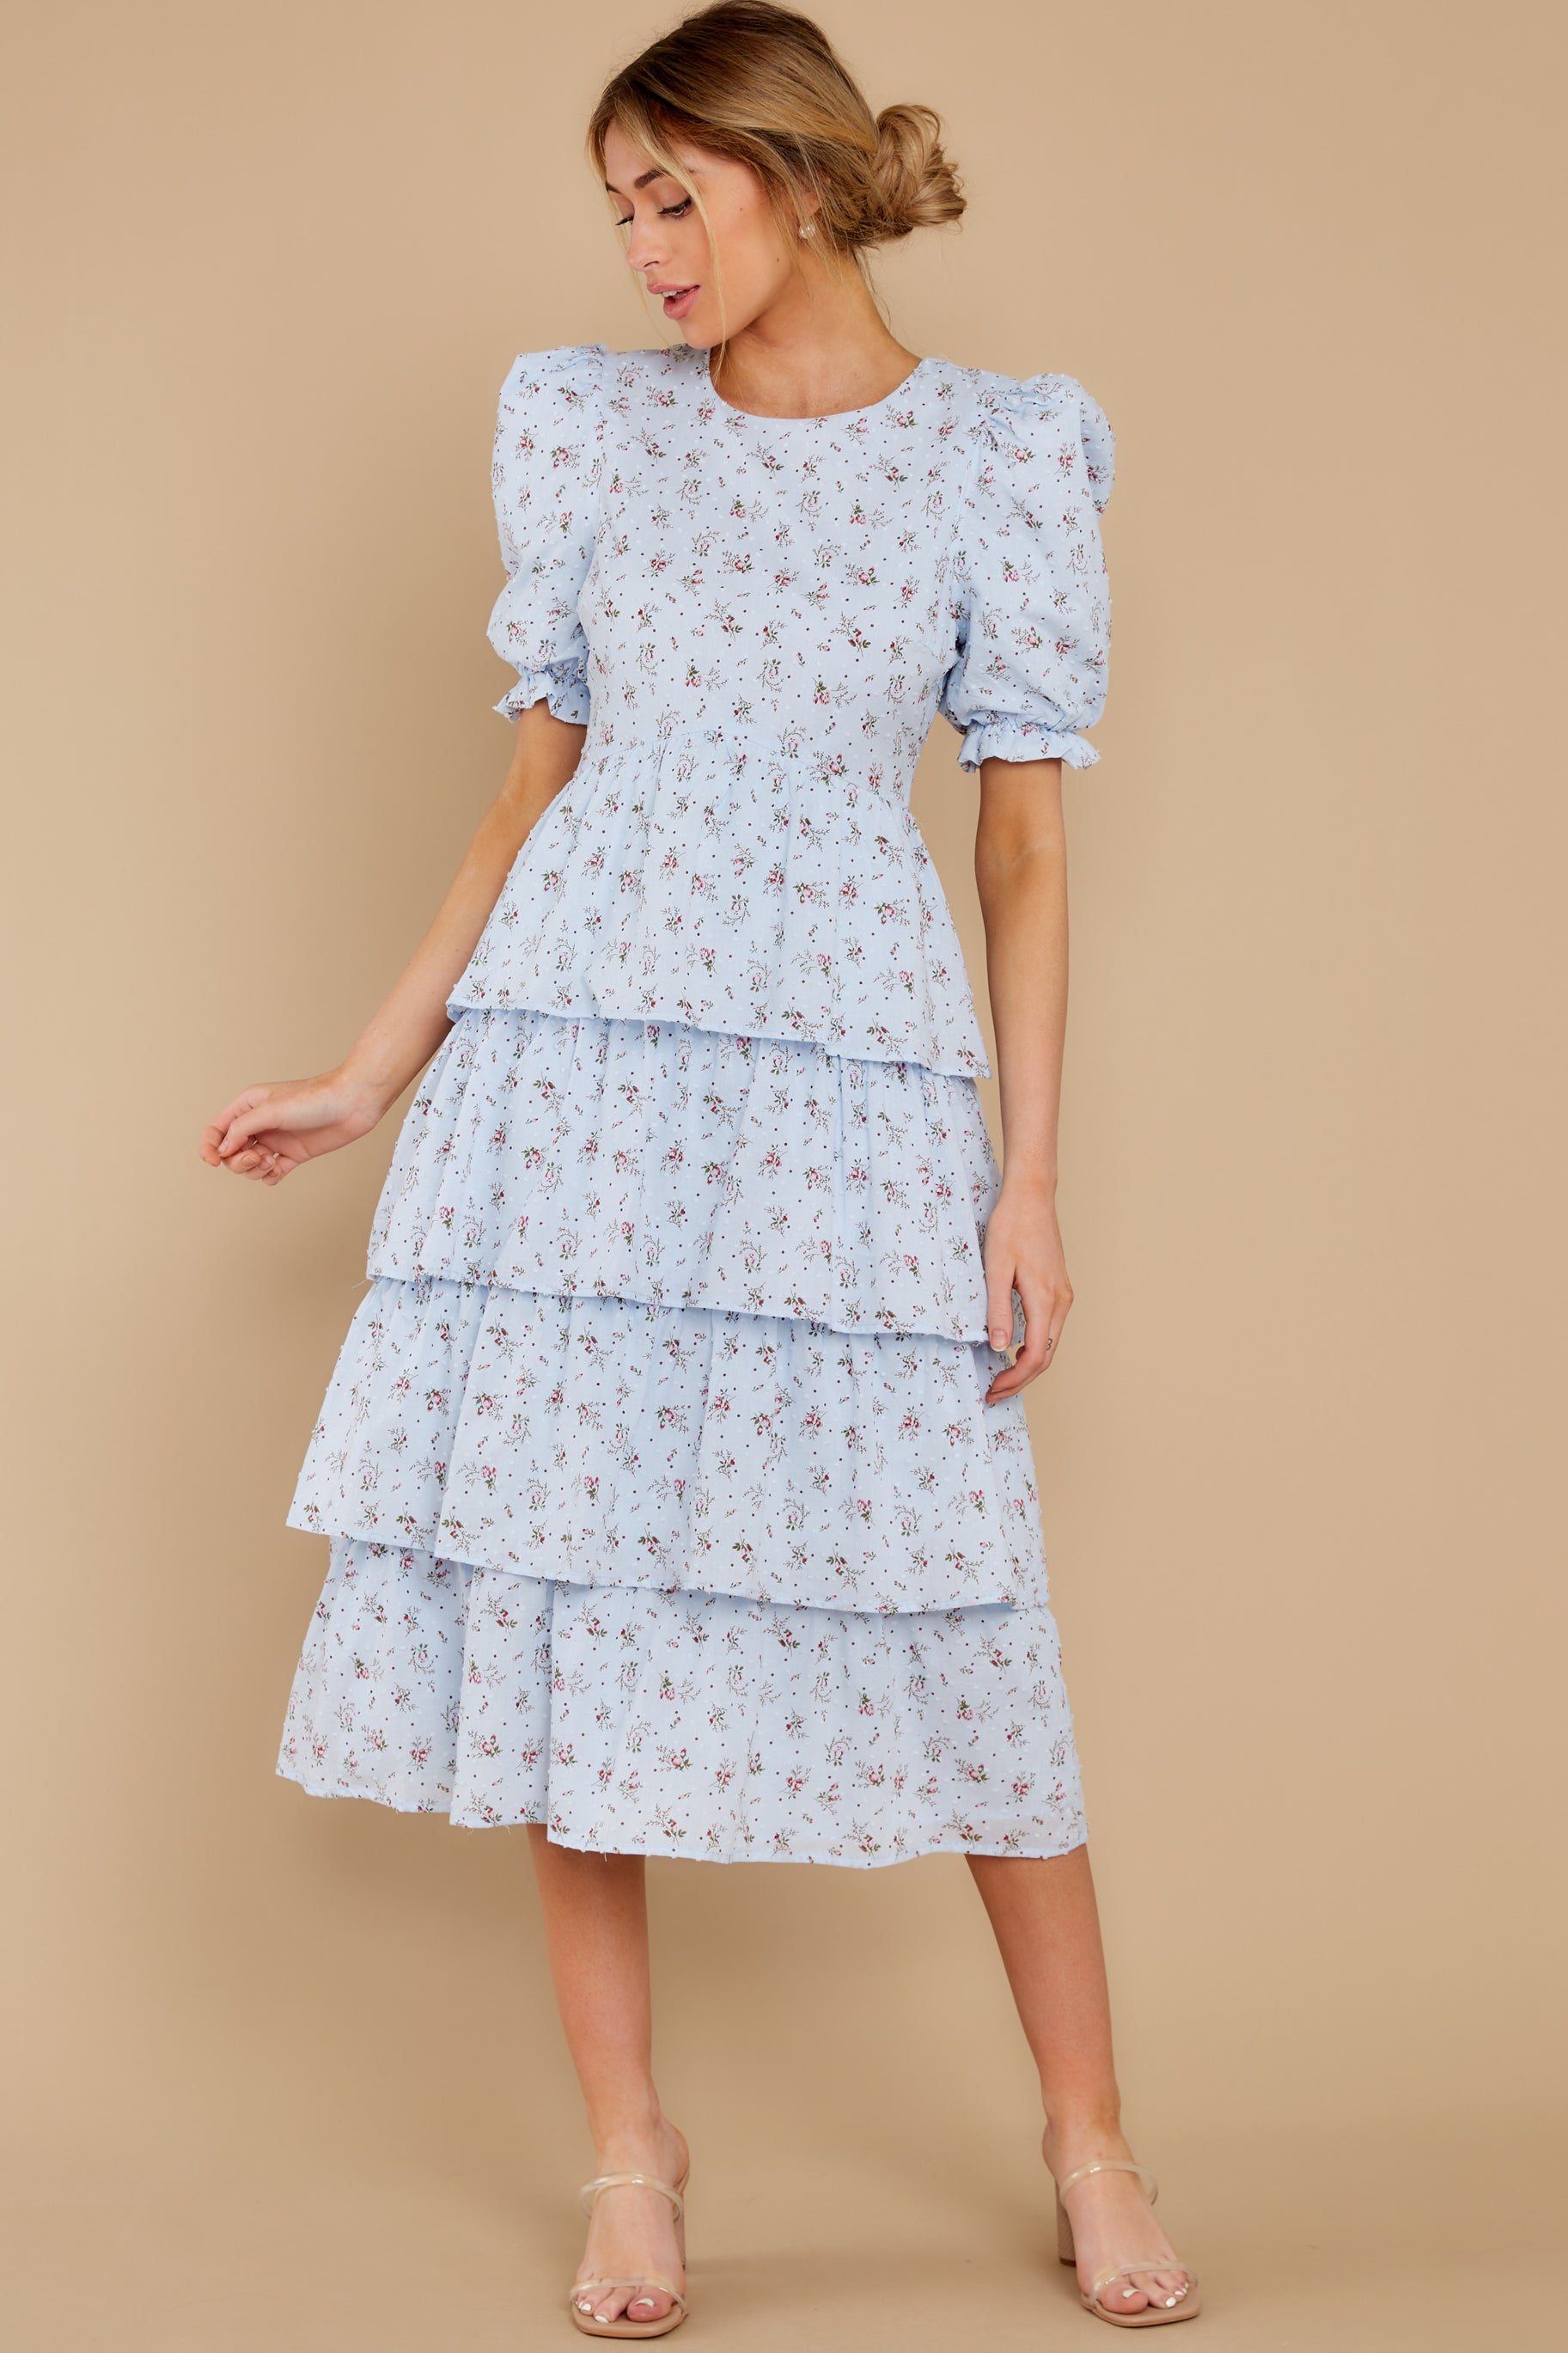 1940s Day Dress Styles, House Dresses Good Girl Light Blue Floral Print Midi Dress $56.00 AT vintagedancer.com